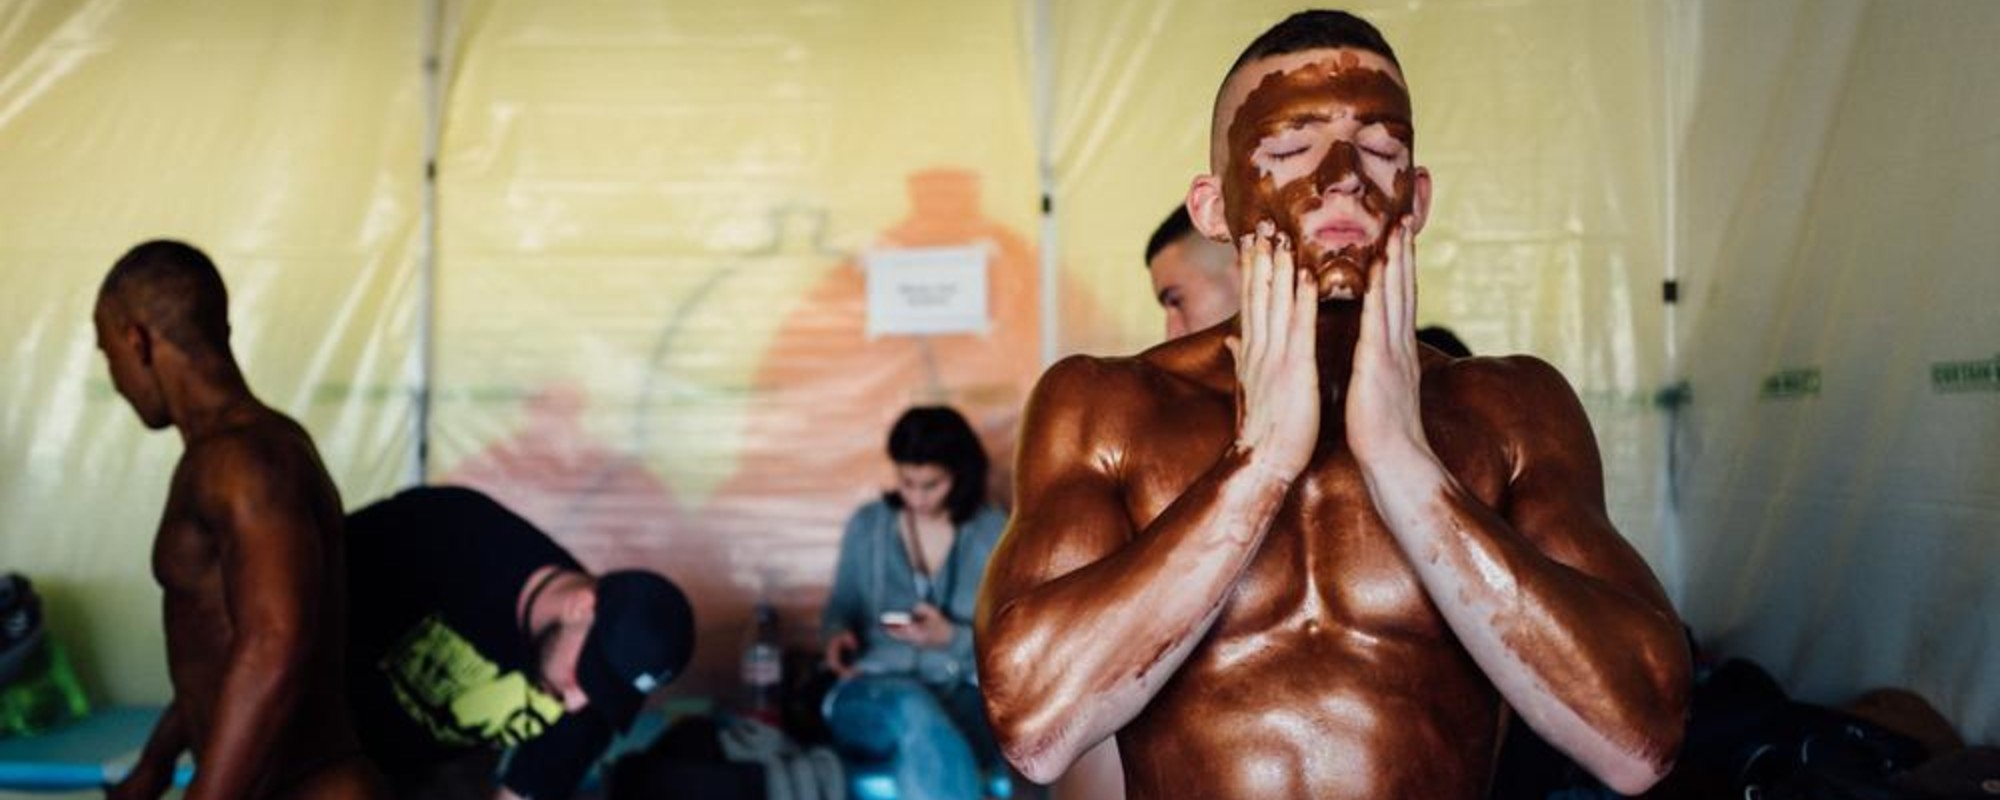 Fake Tan and Flexing Muscles: Backstage at the Swiss National Bodybuilding Championship